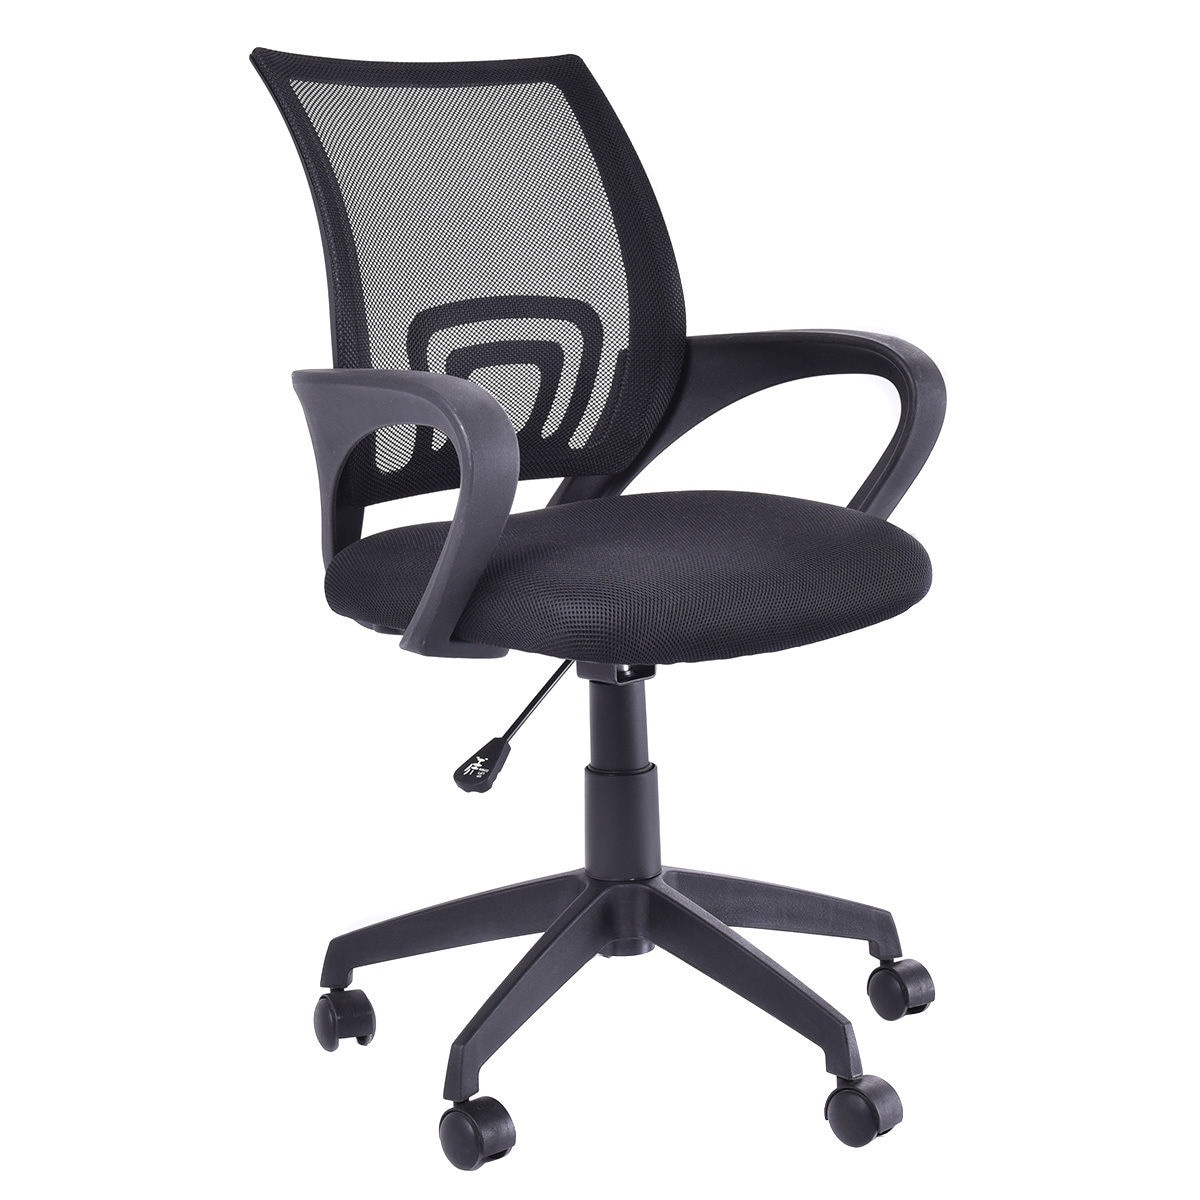 Buy Ergonomic Chairs Online at Overstock.com | Our Best Home Office Furniture Deals  sc 1 st  Overstock.com & Buy Ergonomic Chairs Online at Overstock.com | Our Best Home Office ...